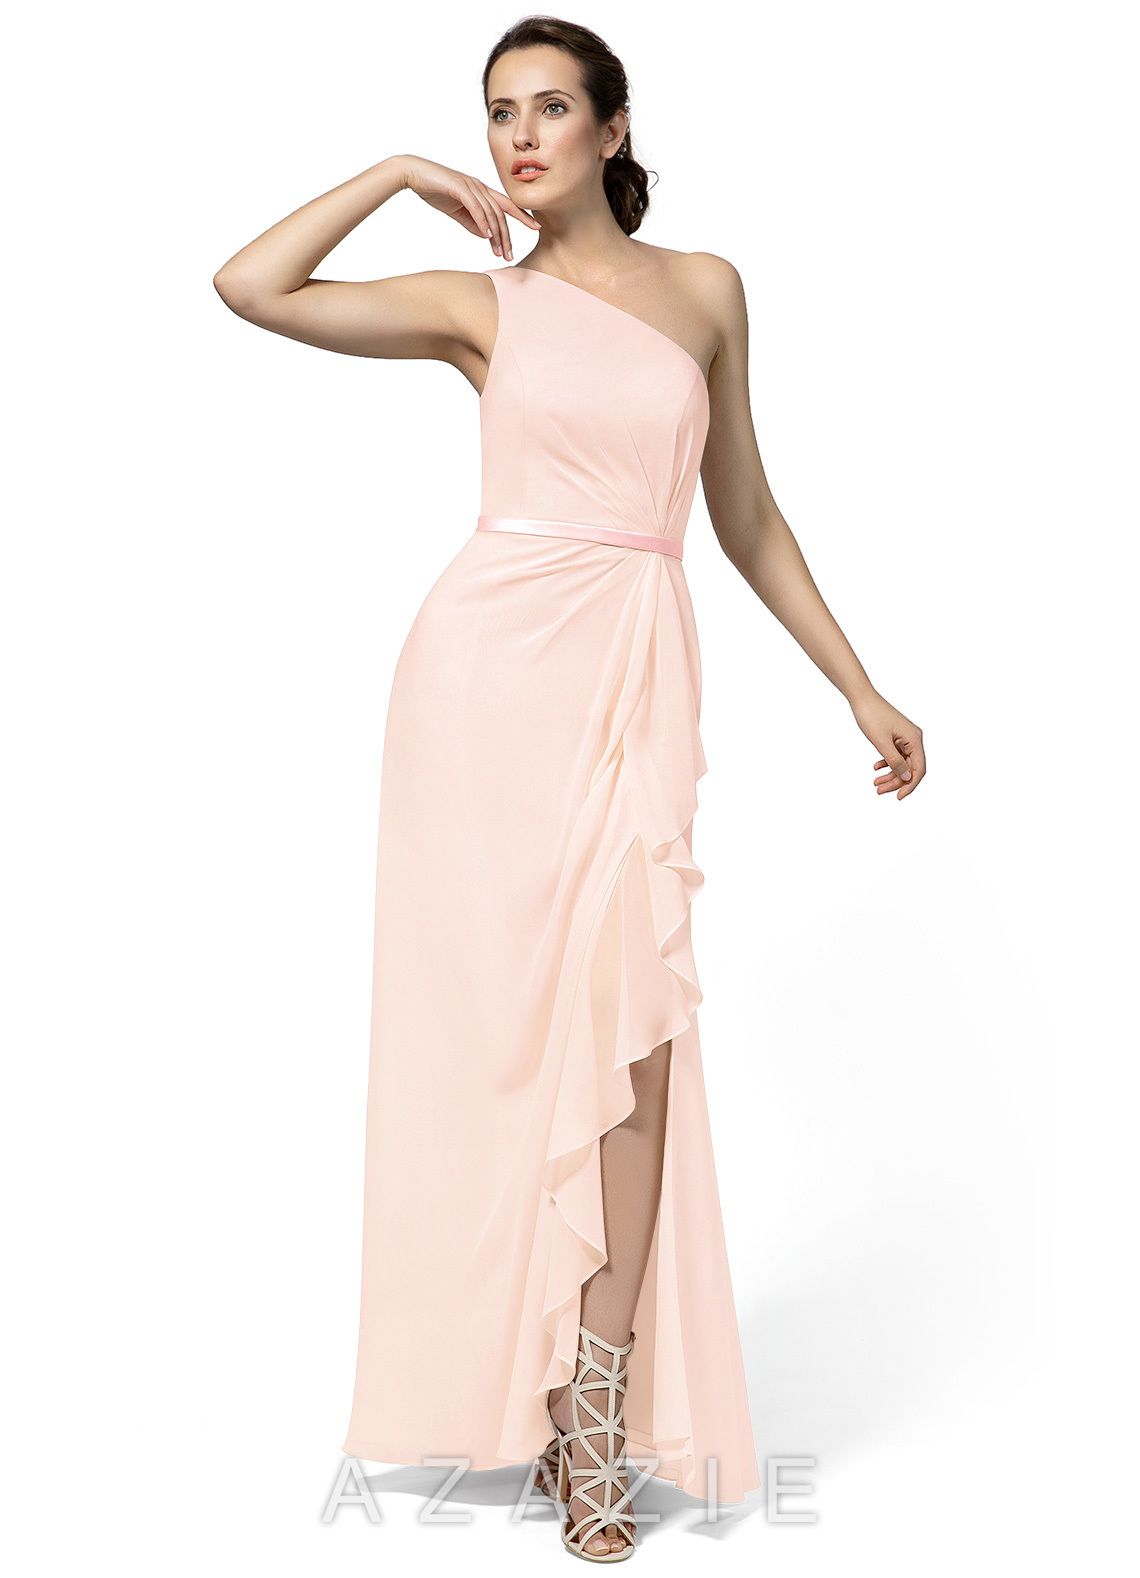 751aff79241 Azazie Liza Bridesmaid Dress